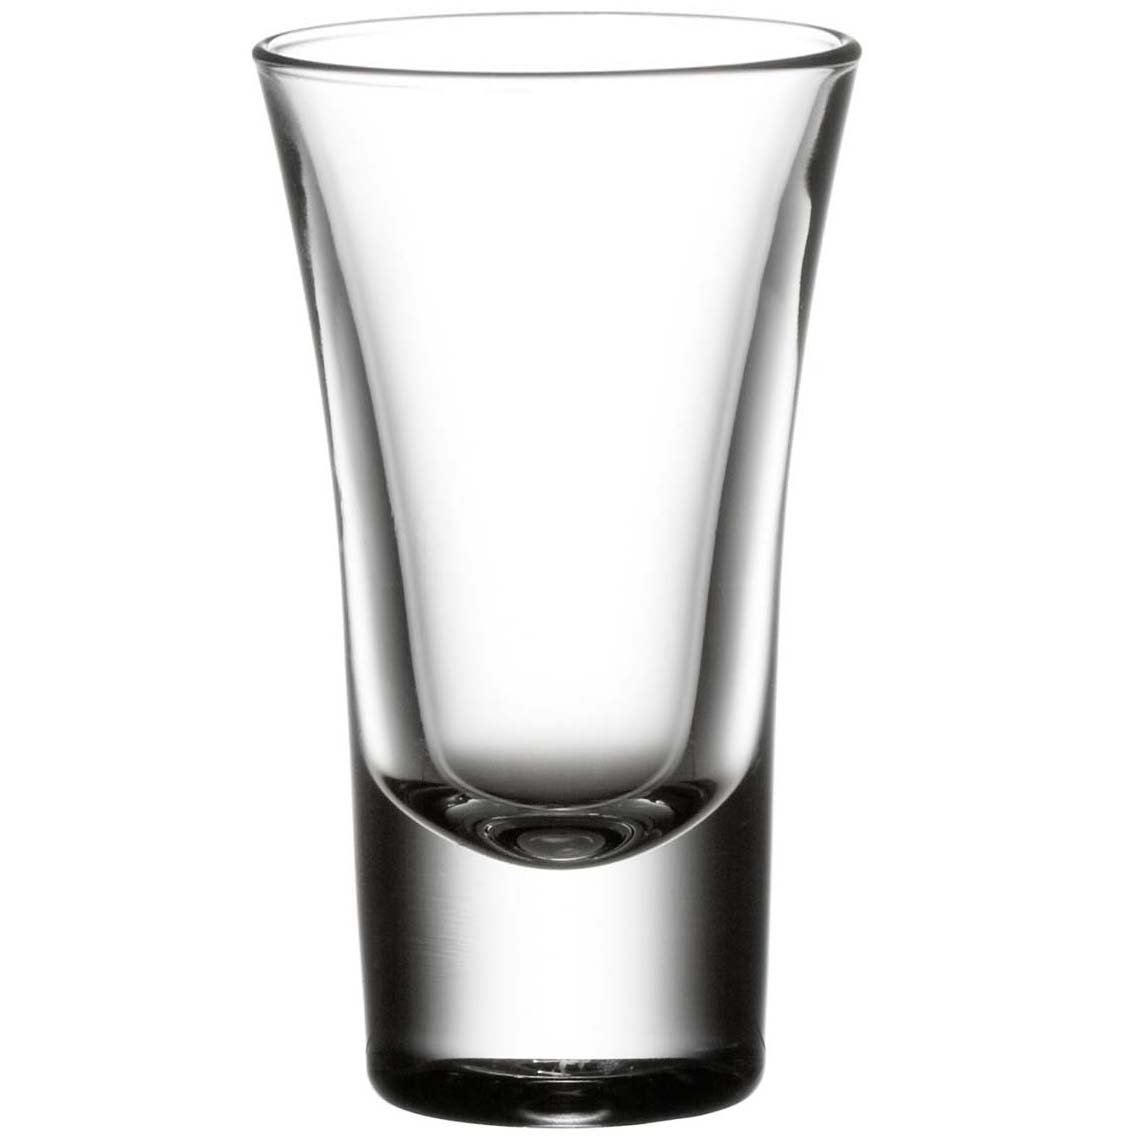 King International 100% Crystal Glass Heavy Base Curved Shot Glass Set of 6 | 2-Ounce Shot Glasses- Ideal fror Whiskey, Vodka, Tequilla| Bar tools | Bar Accessories